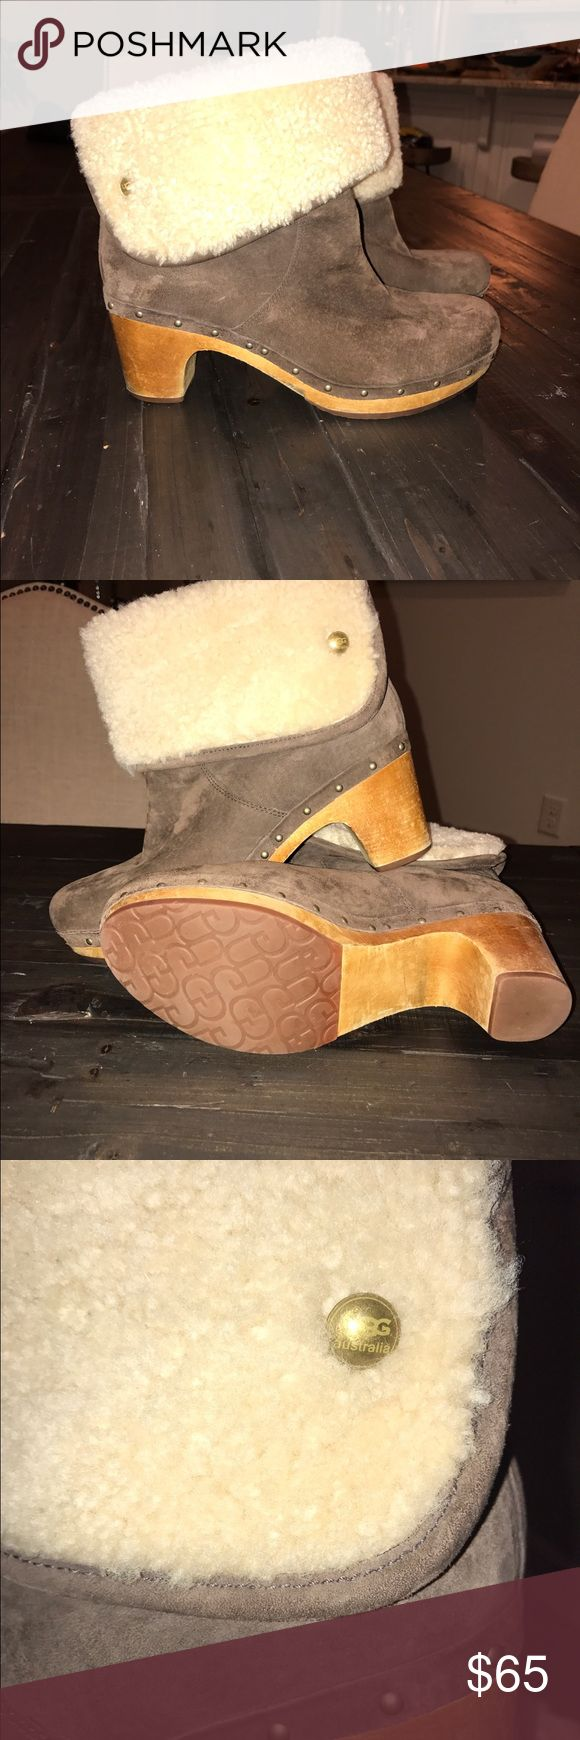 Ugg Lynnea shearling clog bootie size 9.5 Ugg Lynnea shearling clog bootie size 9.5. Worn a few times. Wooden sole. Excellent condition. UGG Shoes Ankle Boots & Booties